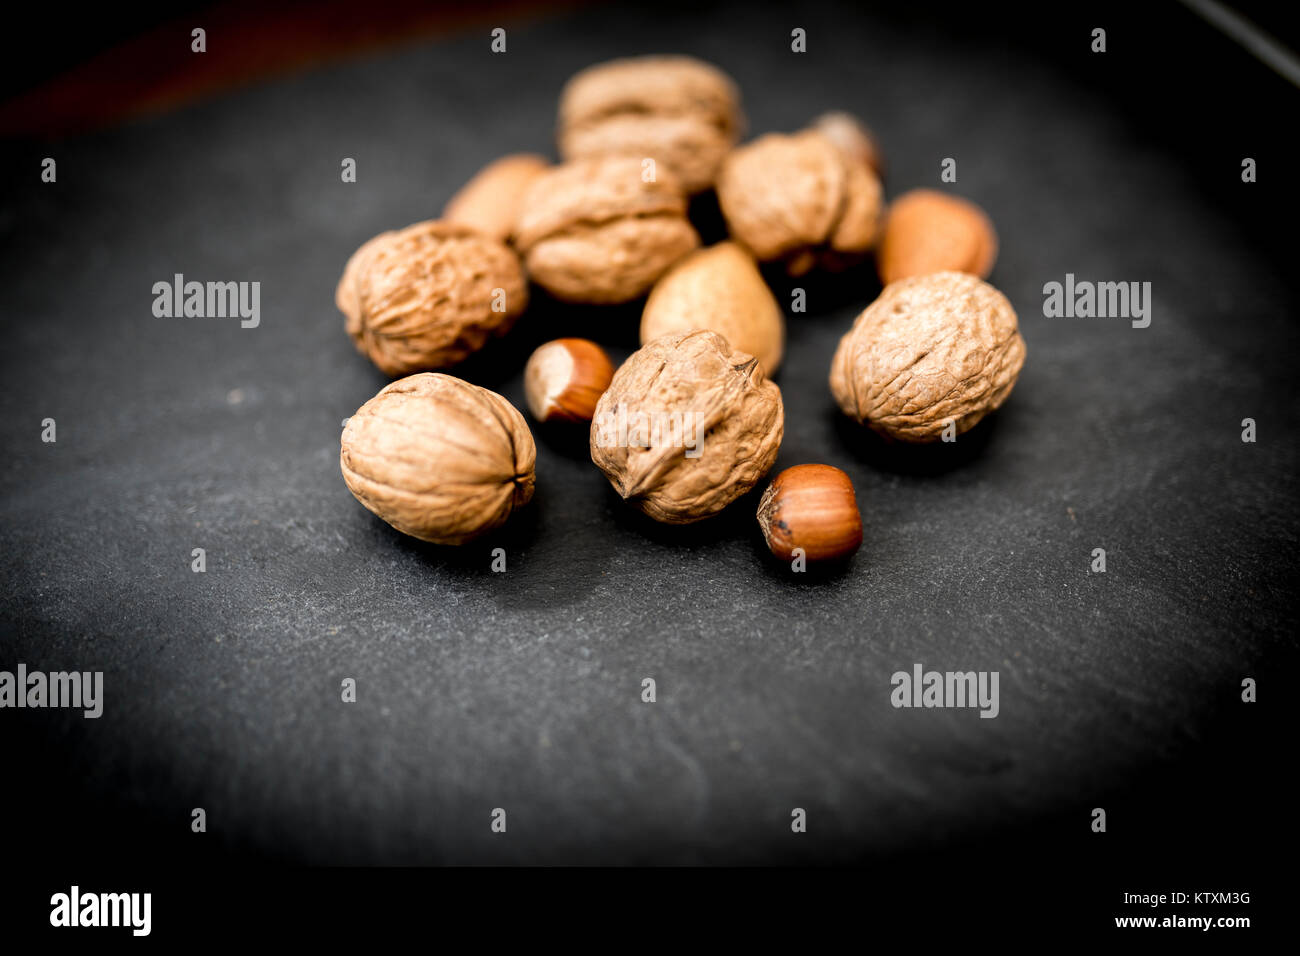 Mixed whole nuts in their shells including walnuts, hazelnuts, almonds and pecans shot on black slate - Stock Image